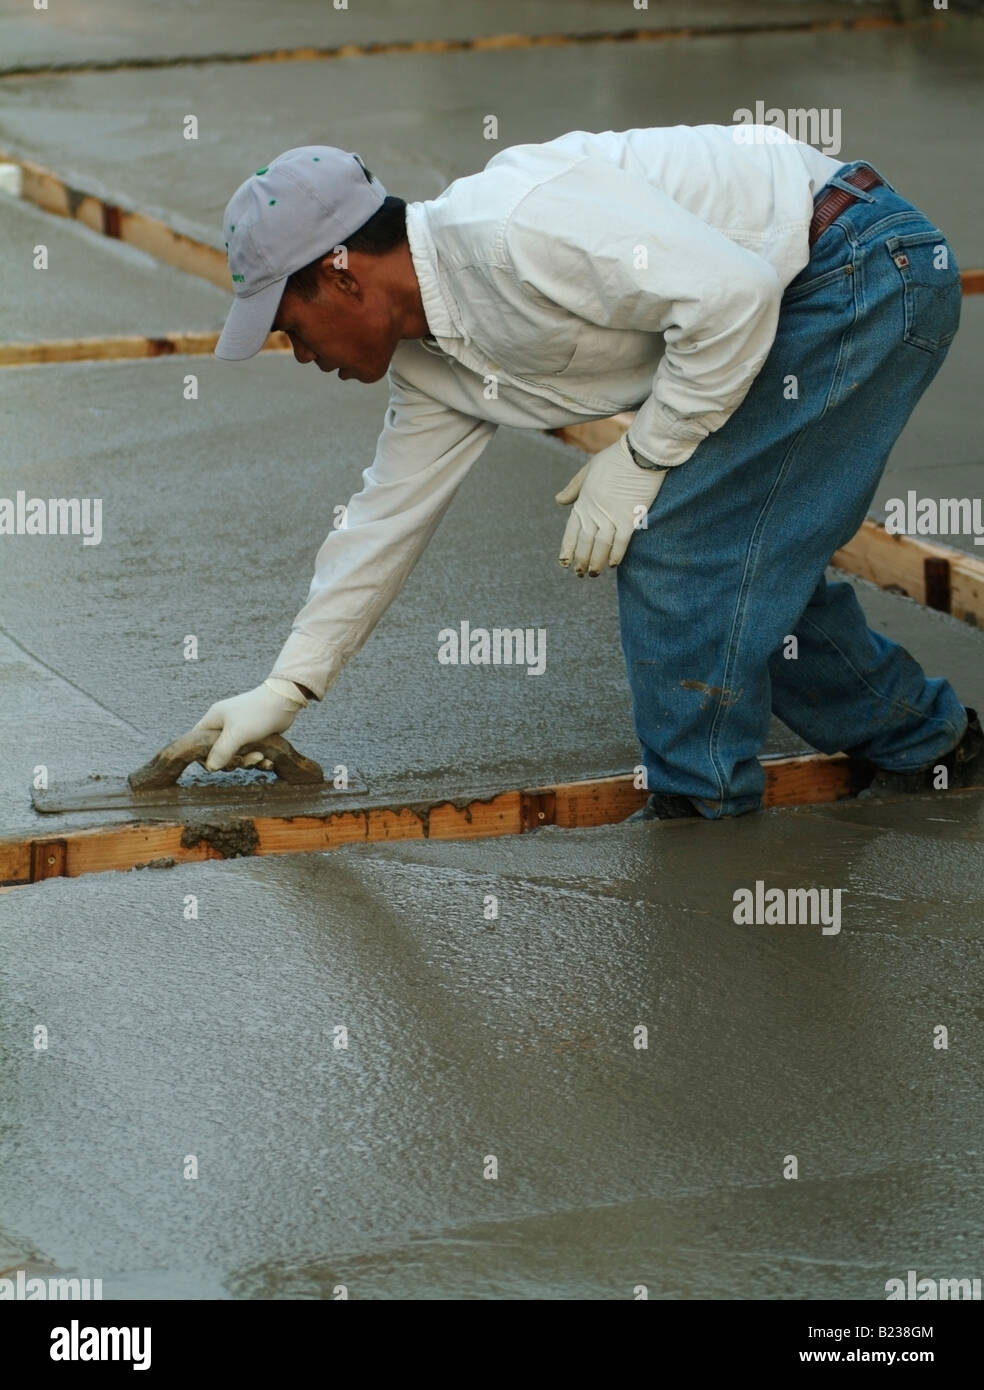 Workman leveling wet concrete with a Darby during construction of a patio in the backyard of a private home in California - Stock Image